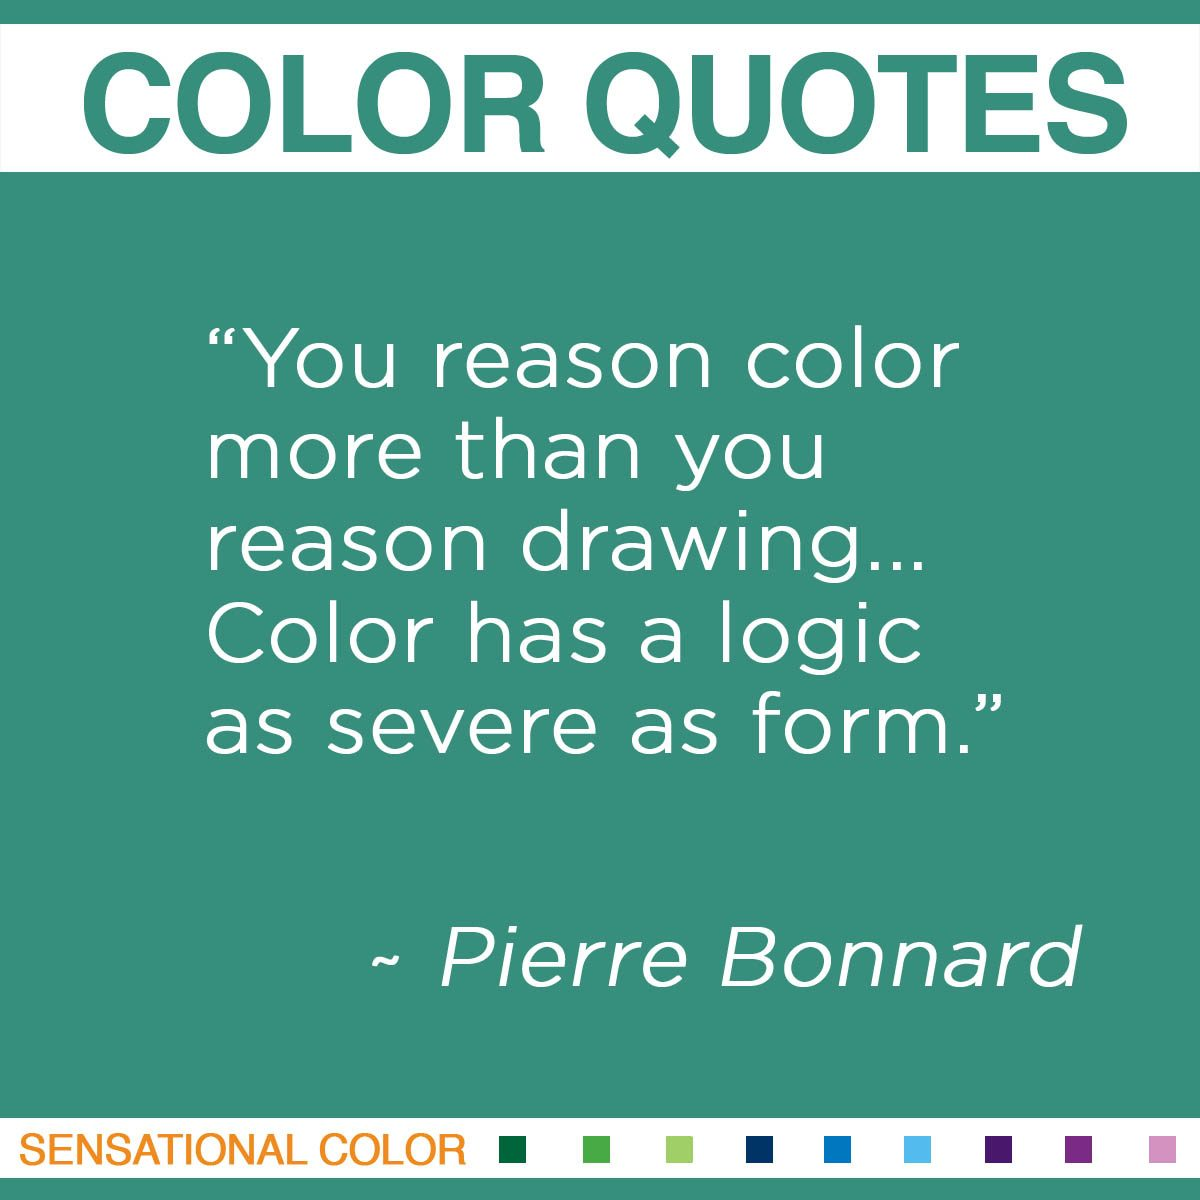 """You reason color more than you reason drawing… Color has a logic as severe as form."" - Pierre Bonnard"